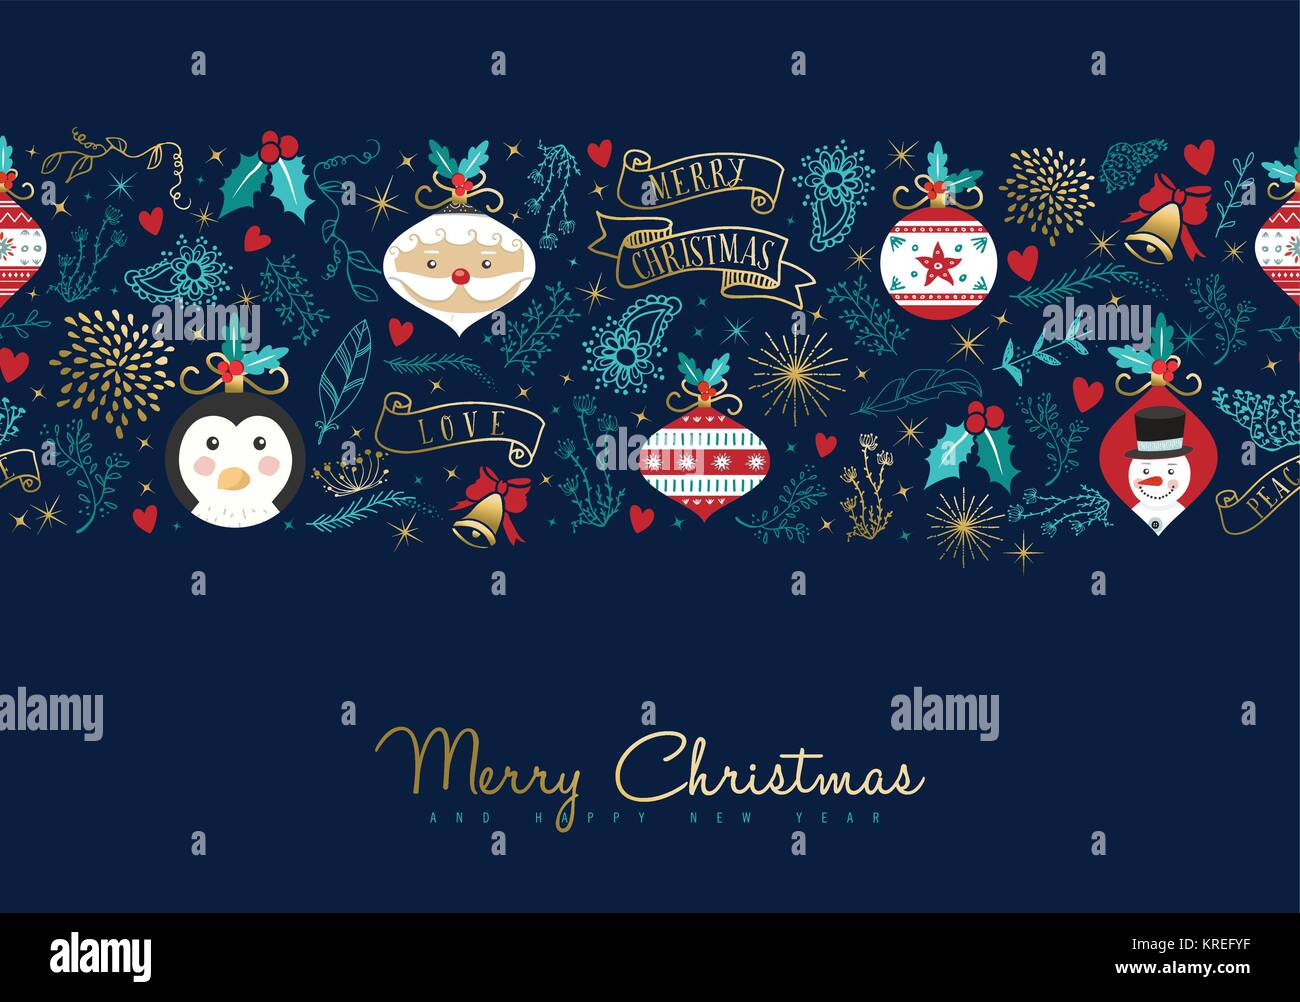 Merry Christmas Seamless Pattern Greeting Card With Text Quote Typography  For New Year Holidays. Includes Santa Claus, Snowman And Penguin Cartoon Dec